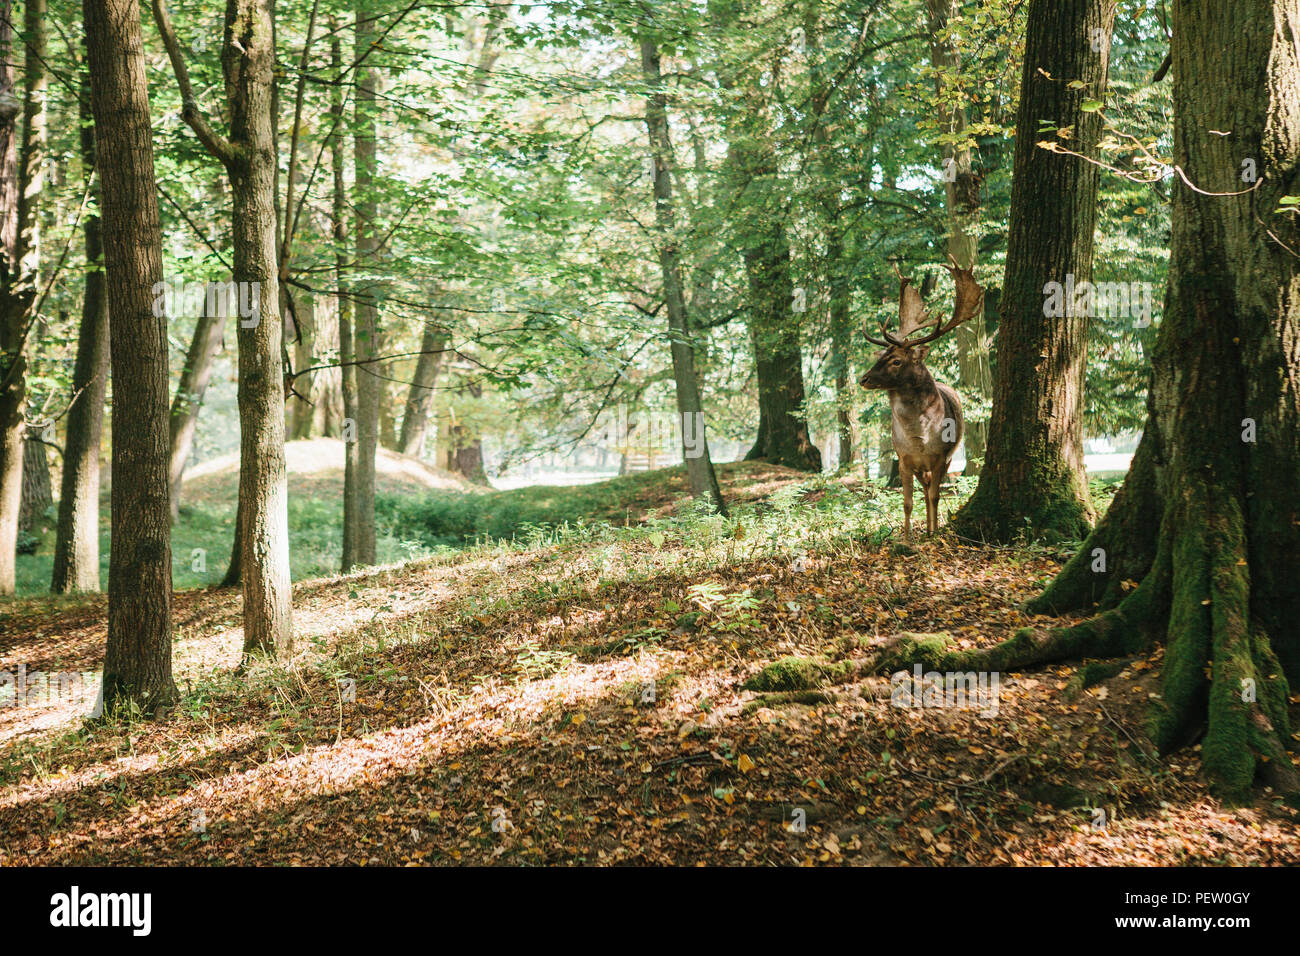 Beautiful deer with branched horns stands on a hill in an autumn forest among trees. Wild deer in the natural habitat. - Stock Image